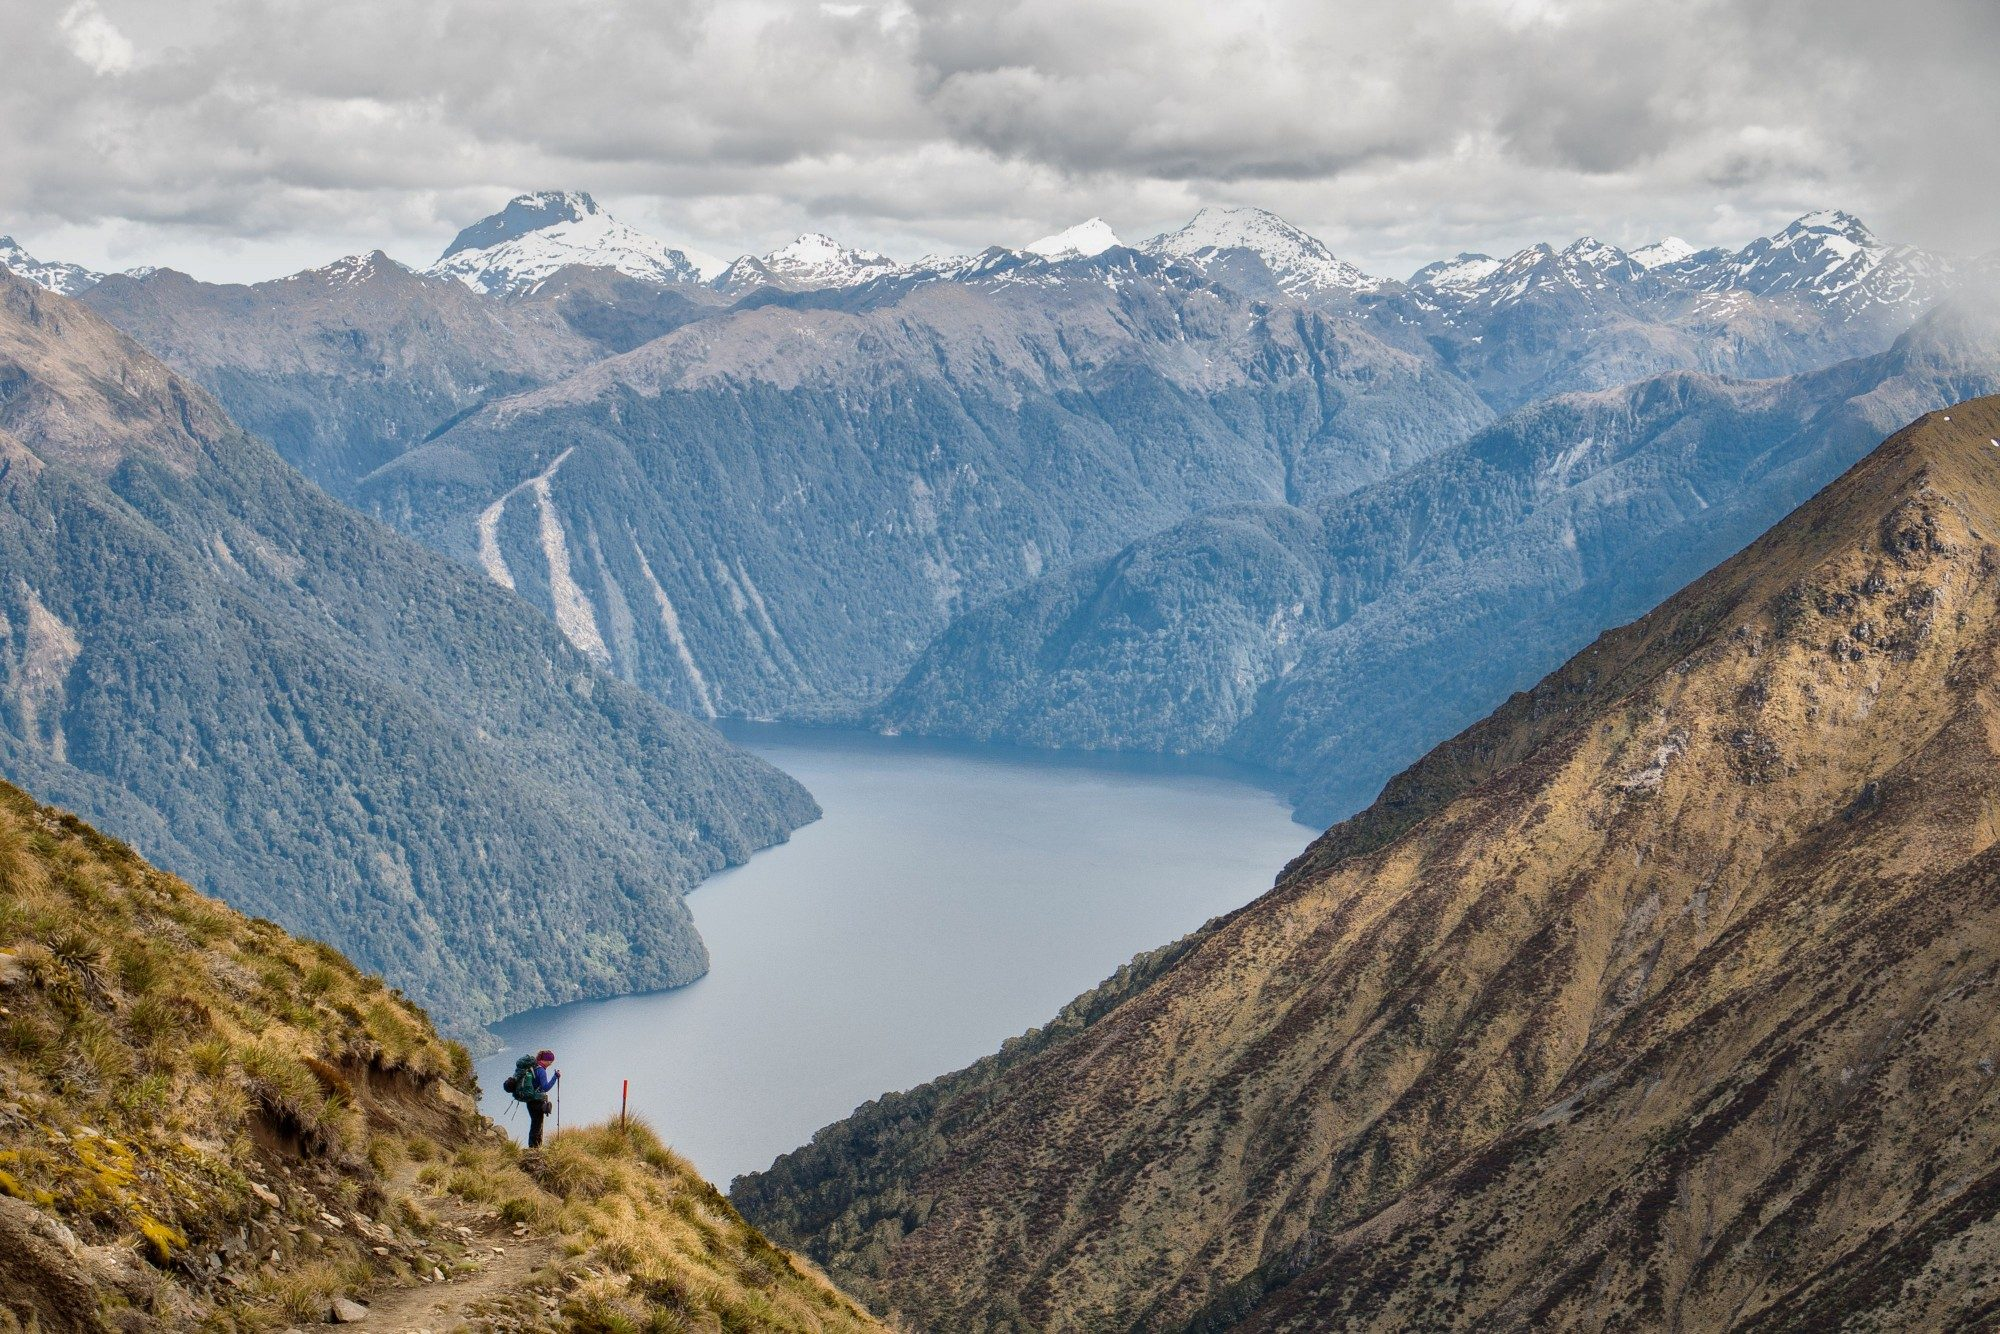 Person tramping in mountains above large lake